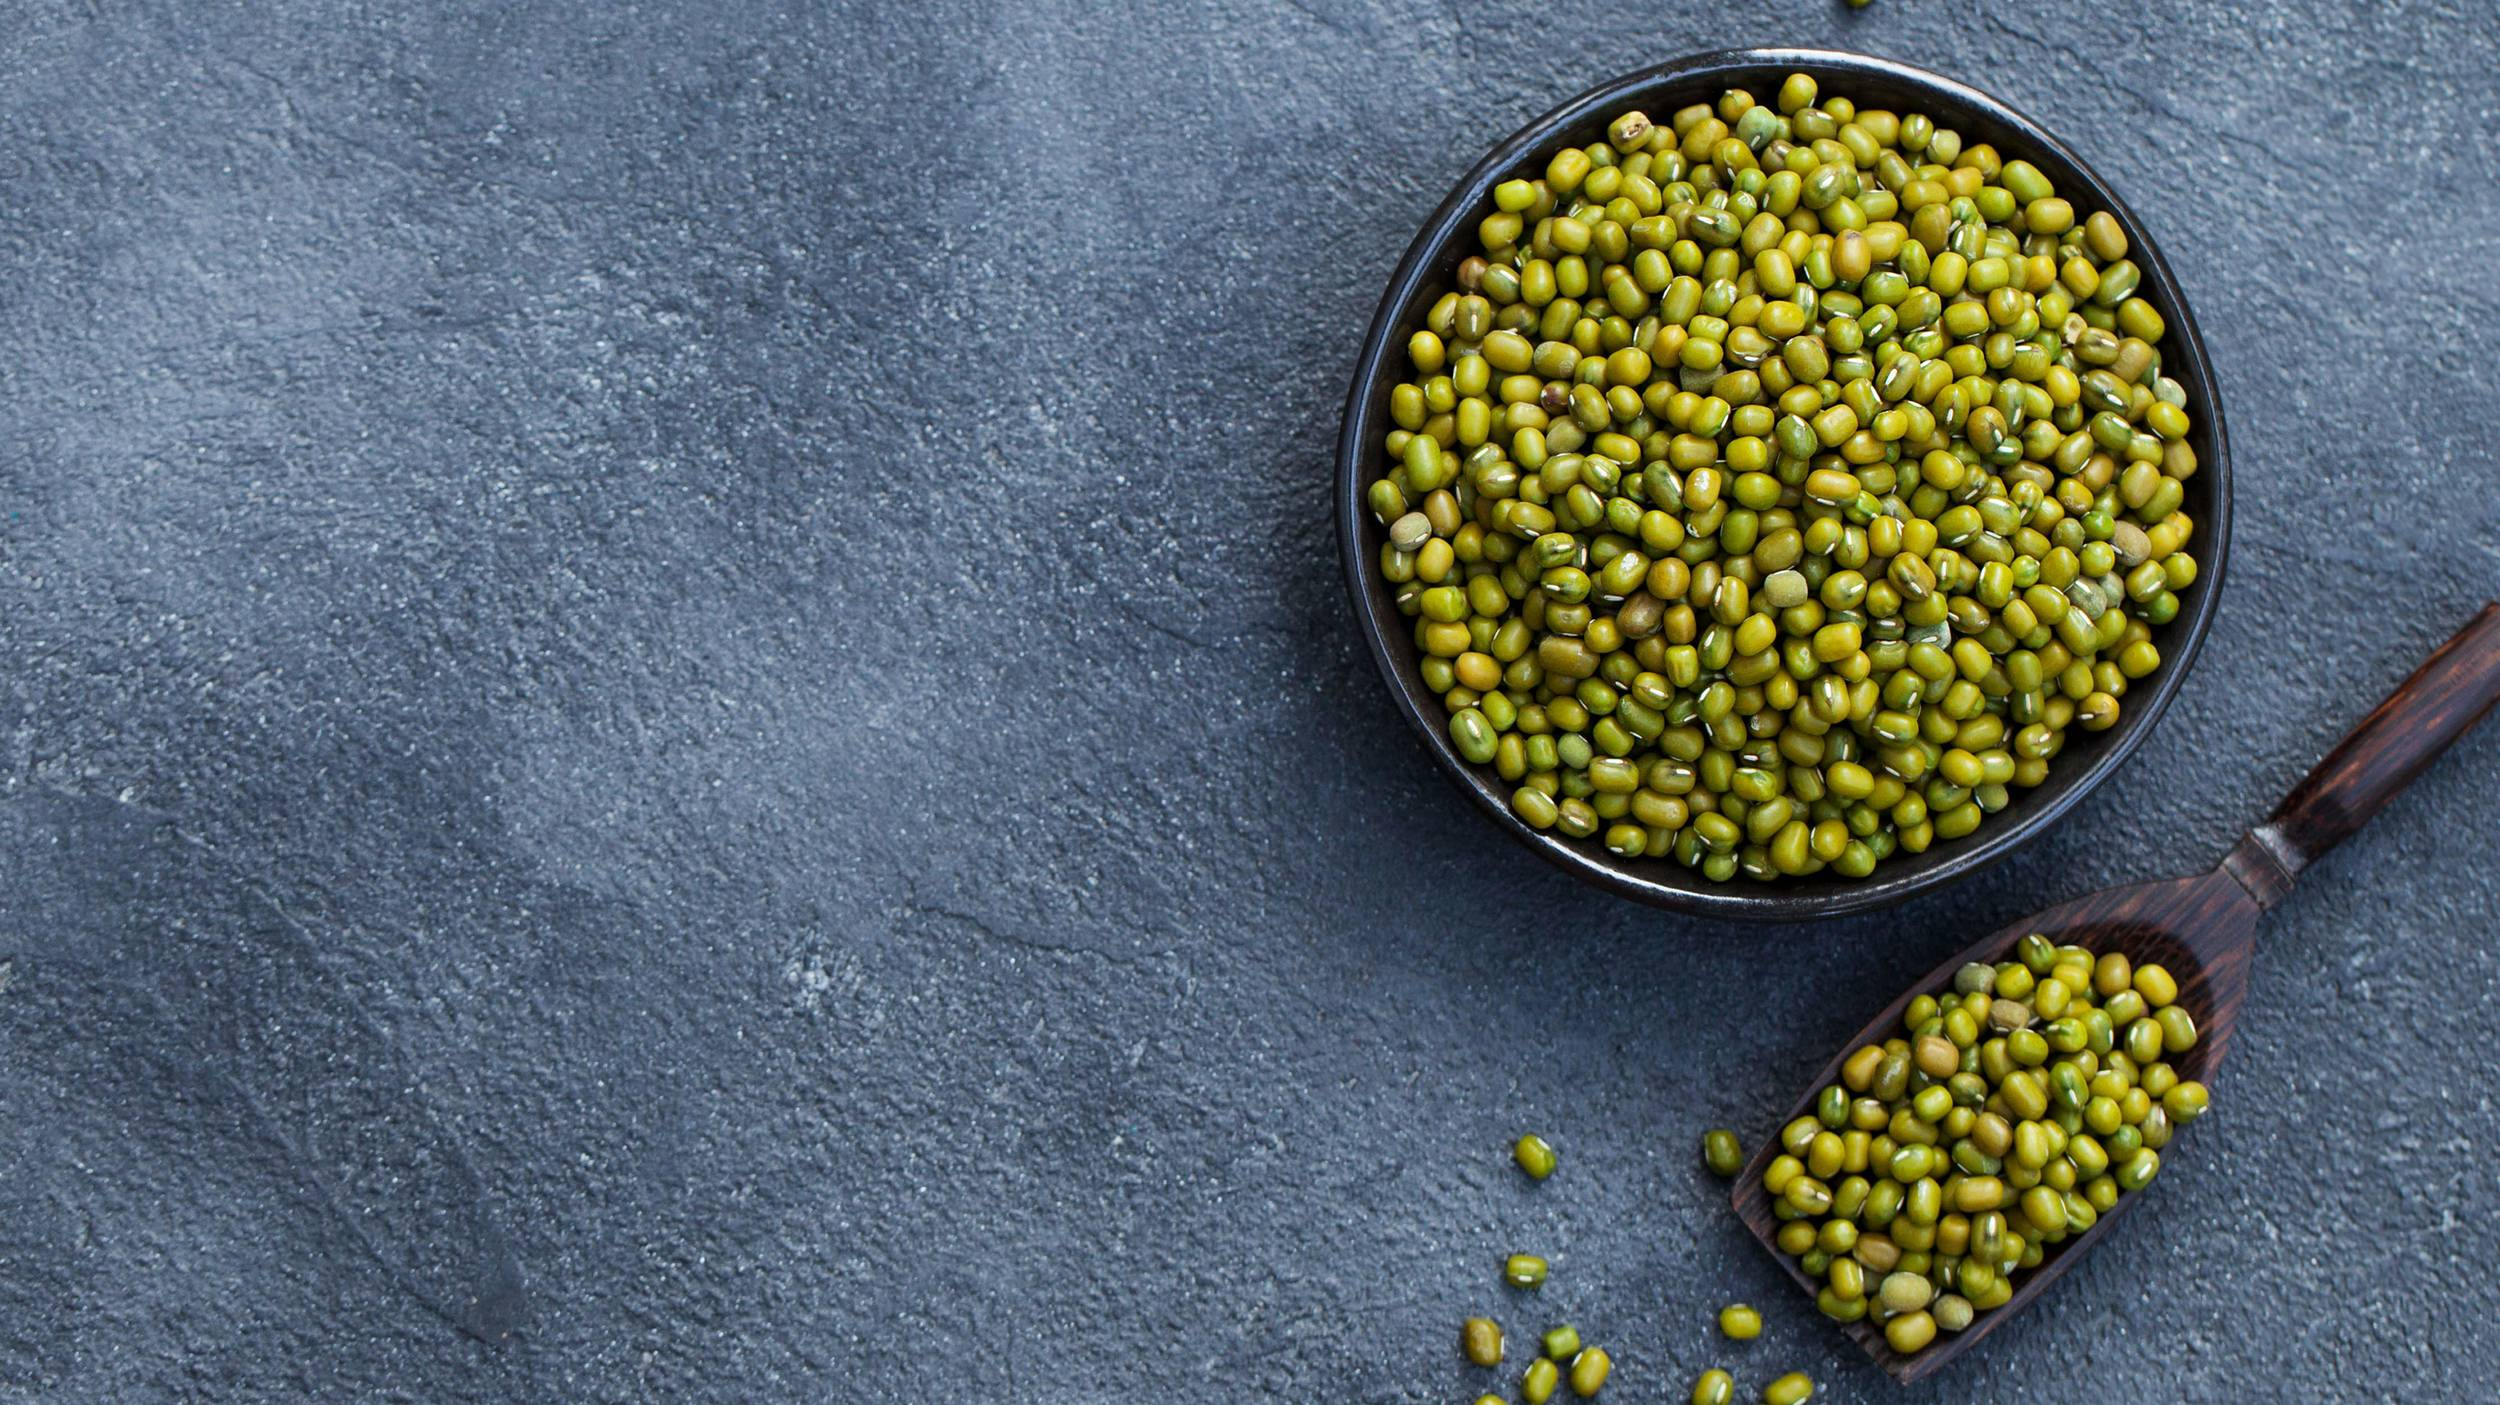 Mung beans have a slightly sweet and nutty flavour and are traditionally used in both sweet and savoury Asian dishes.